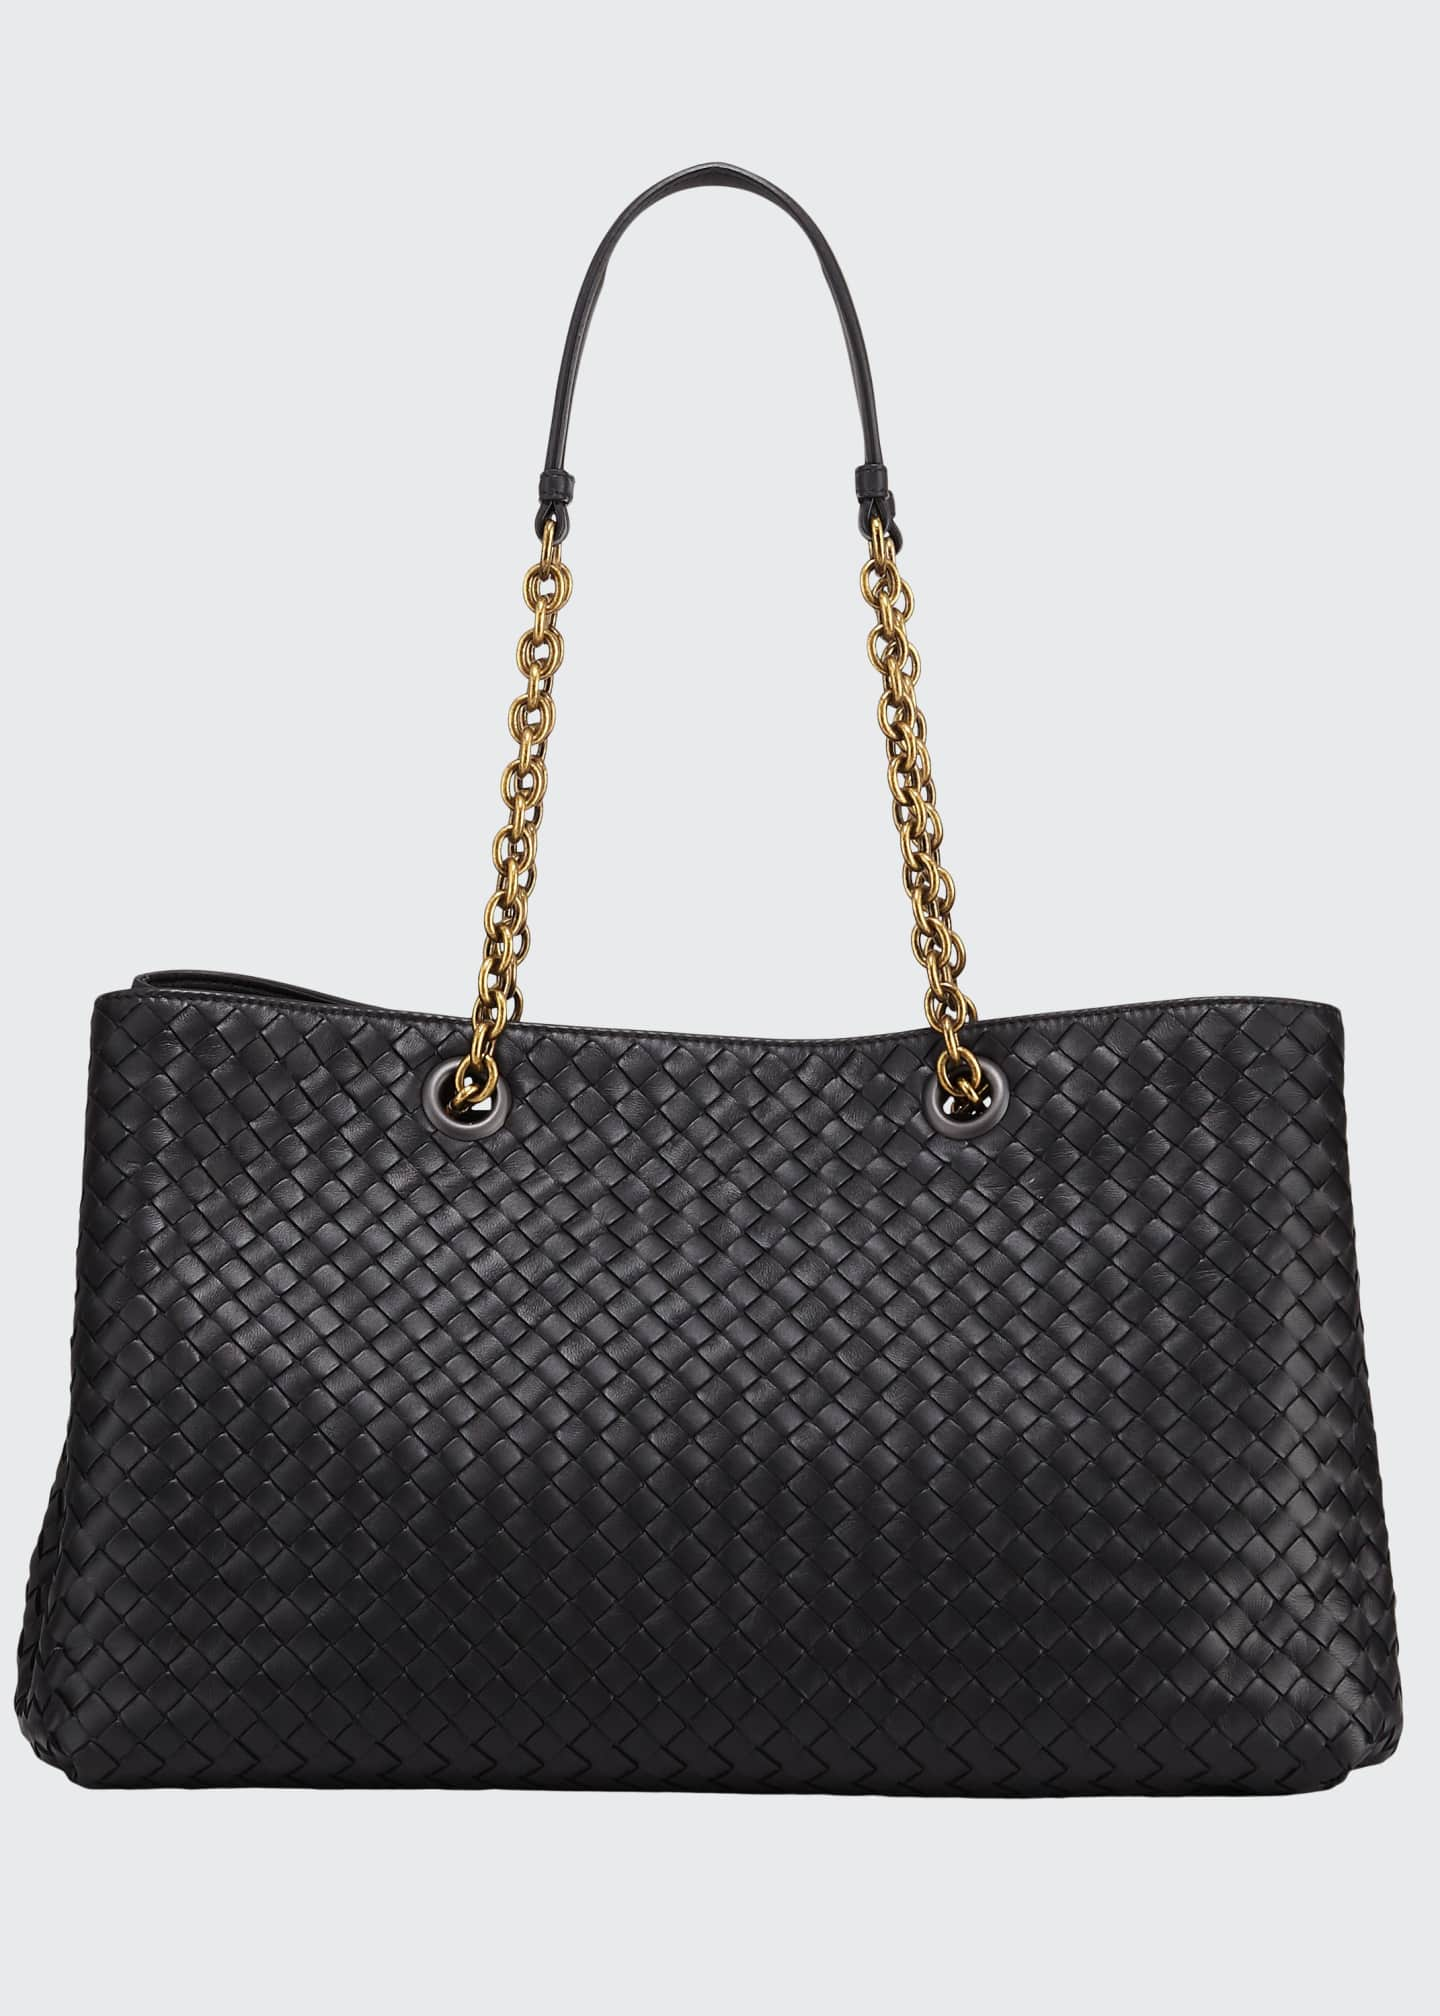 Bottega Veneta Intrecciato Medium Double Chain Tote Bag